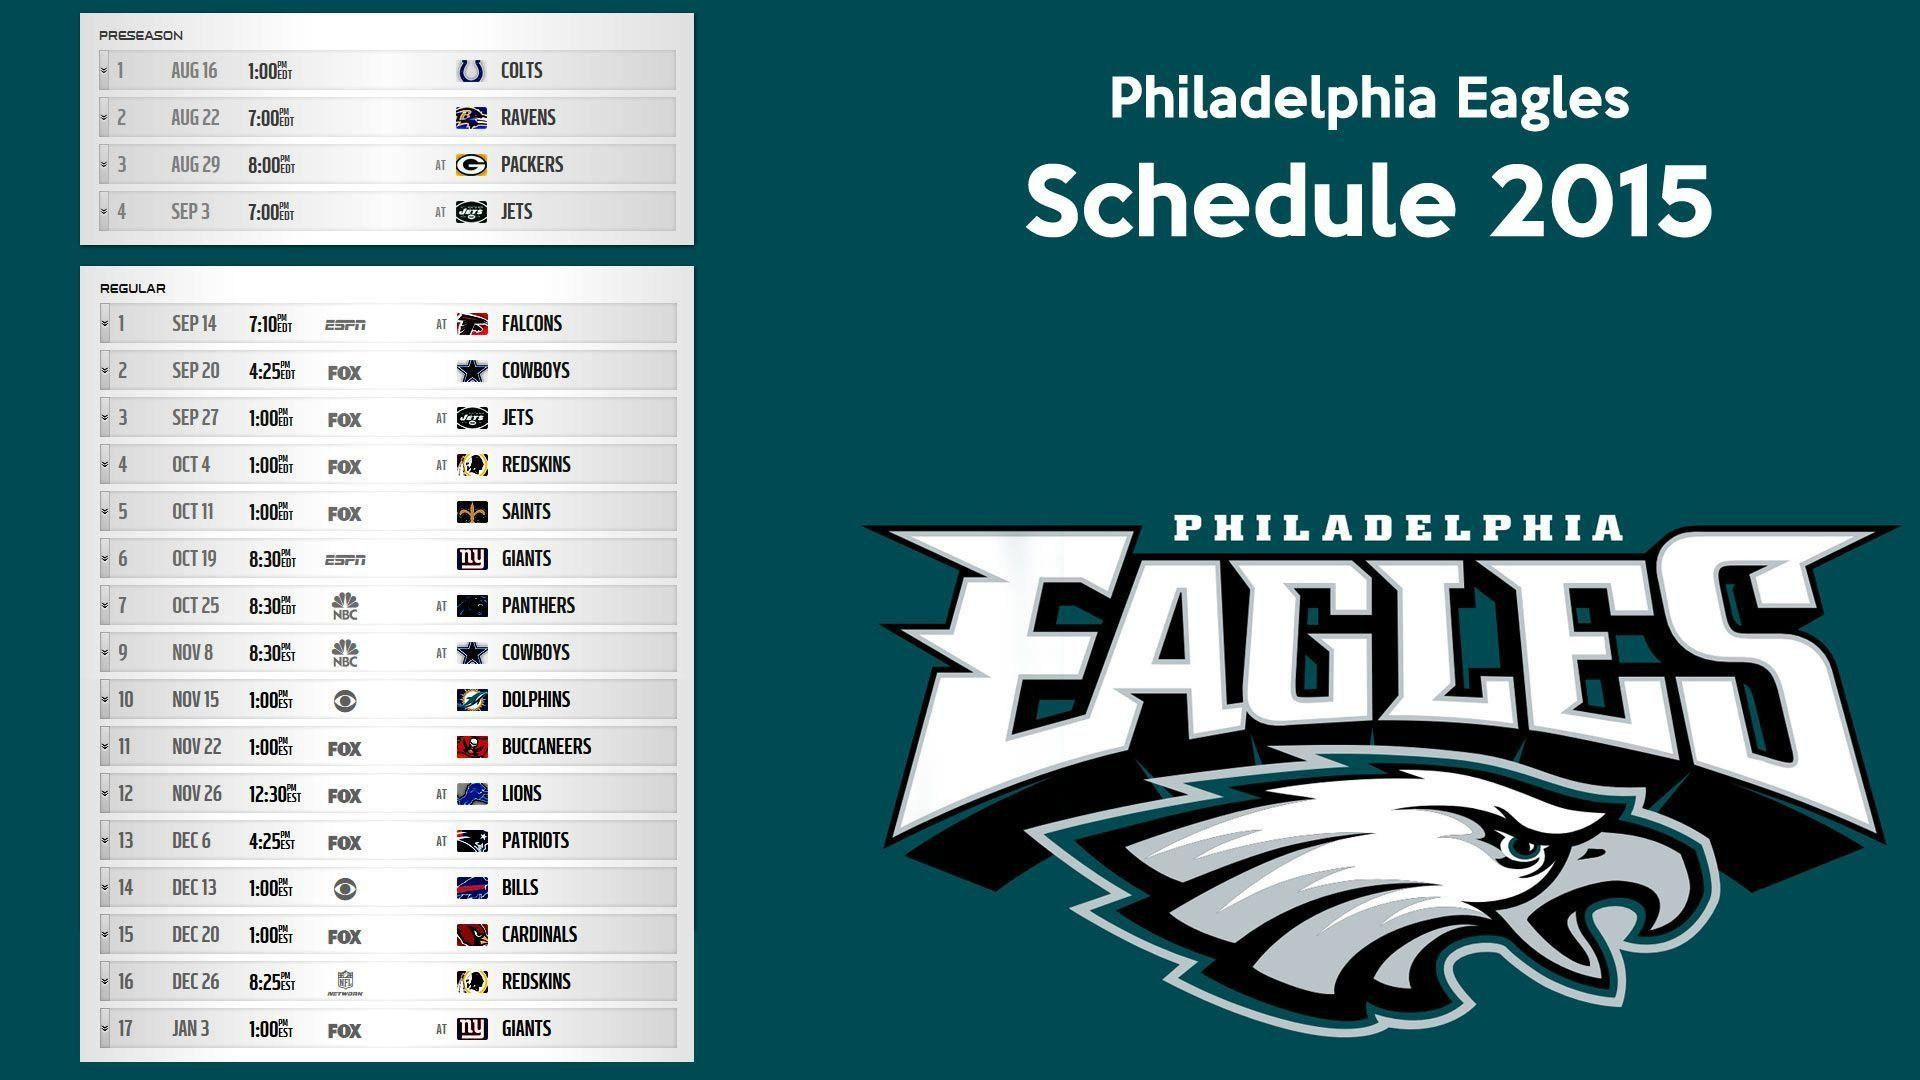 1920x1080 Philadelphia Eagles 2016 Schedule Wallpapers - Wallpaper Cave